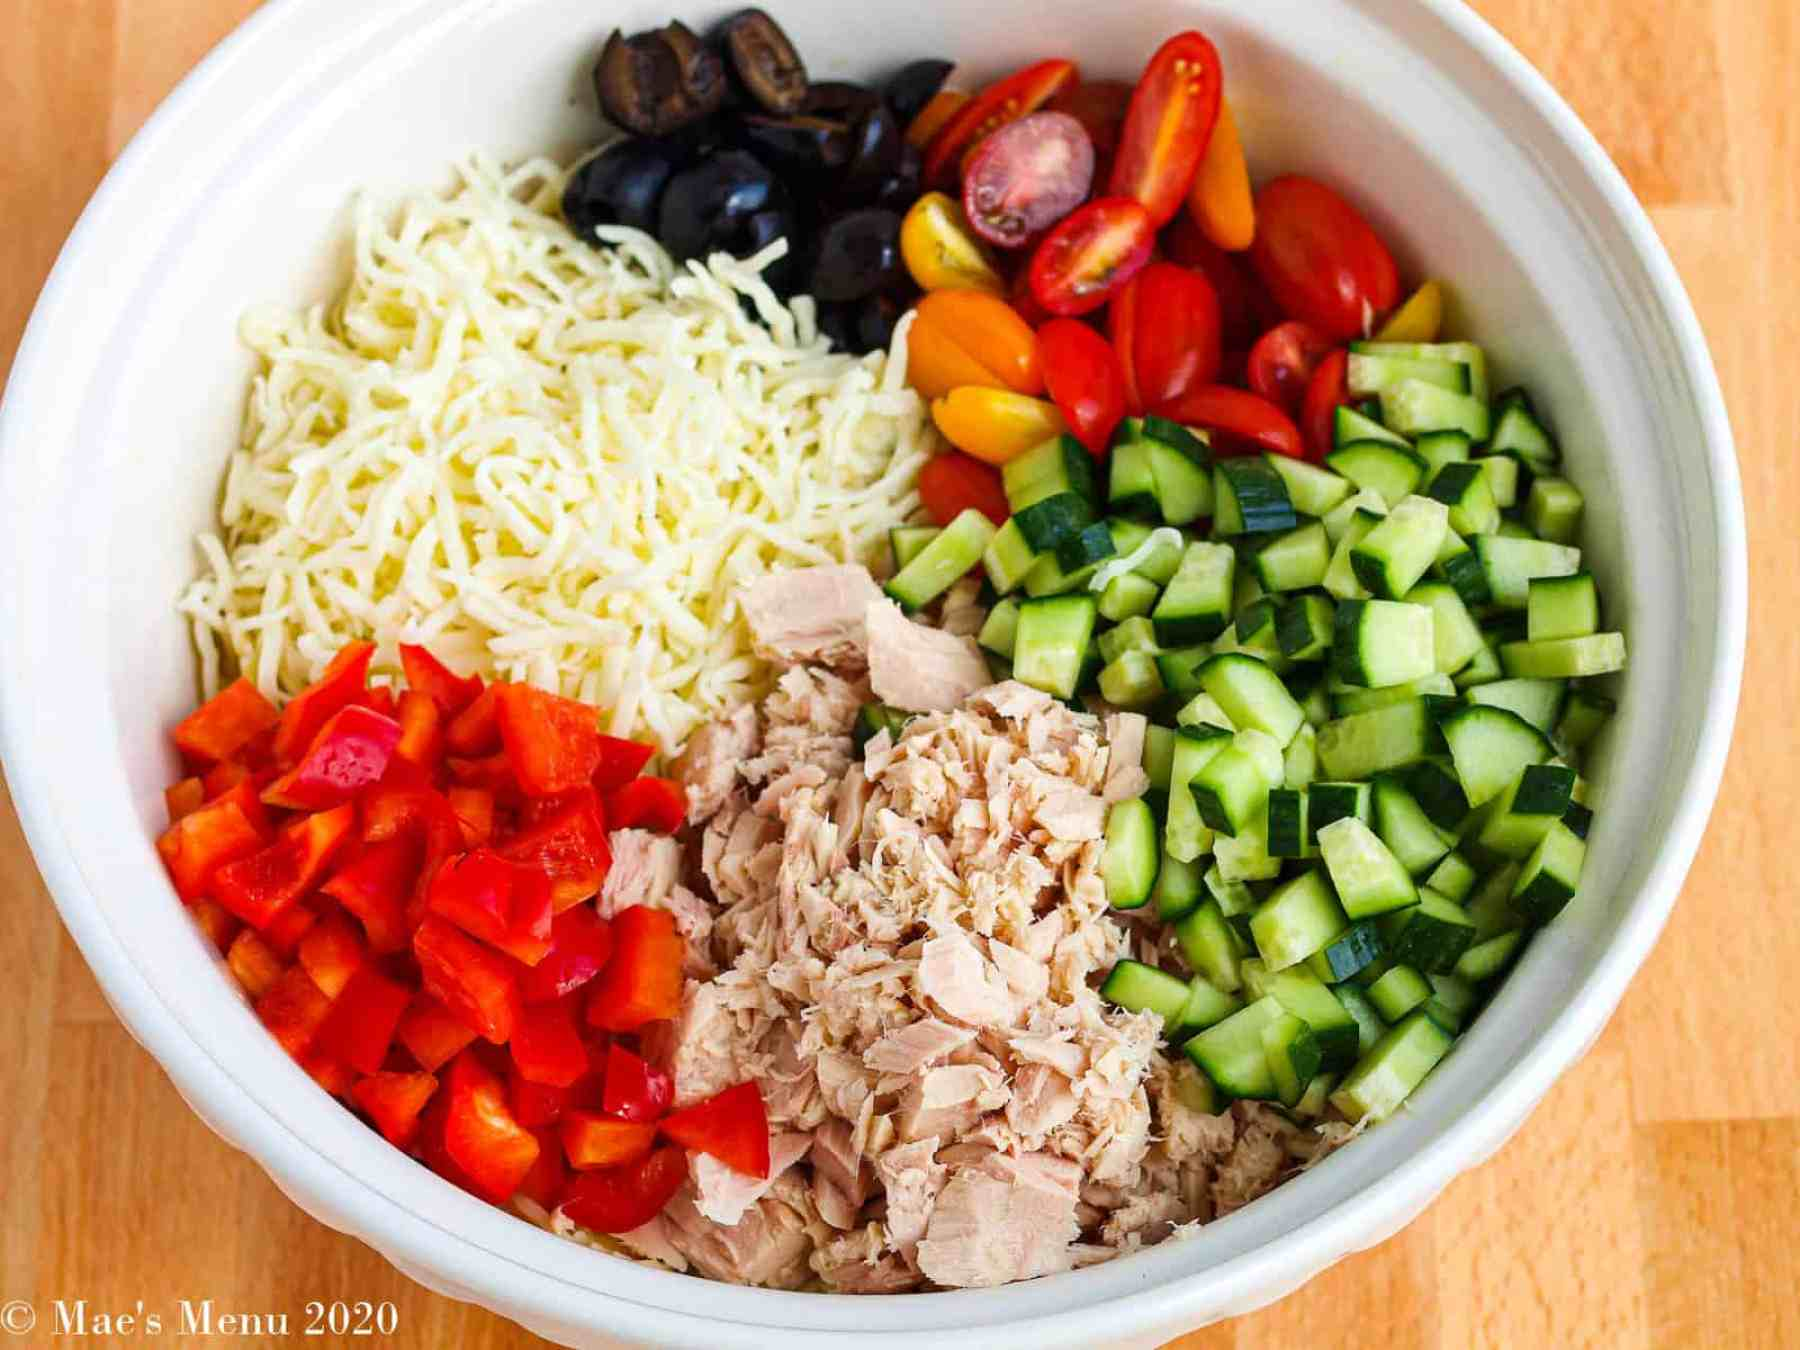 An overhead shot of a bowl full of ingredients before being mixed for the salad.